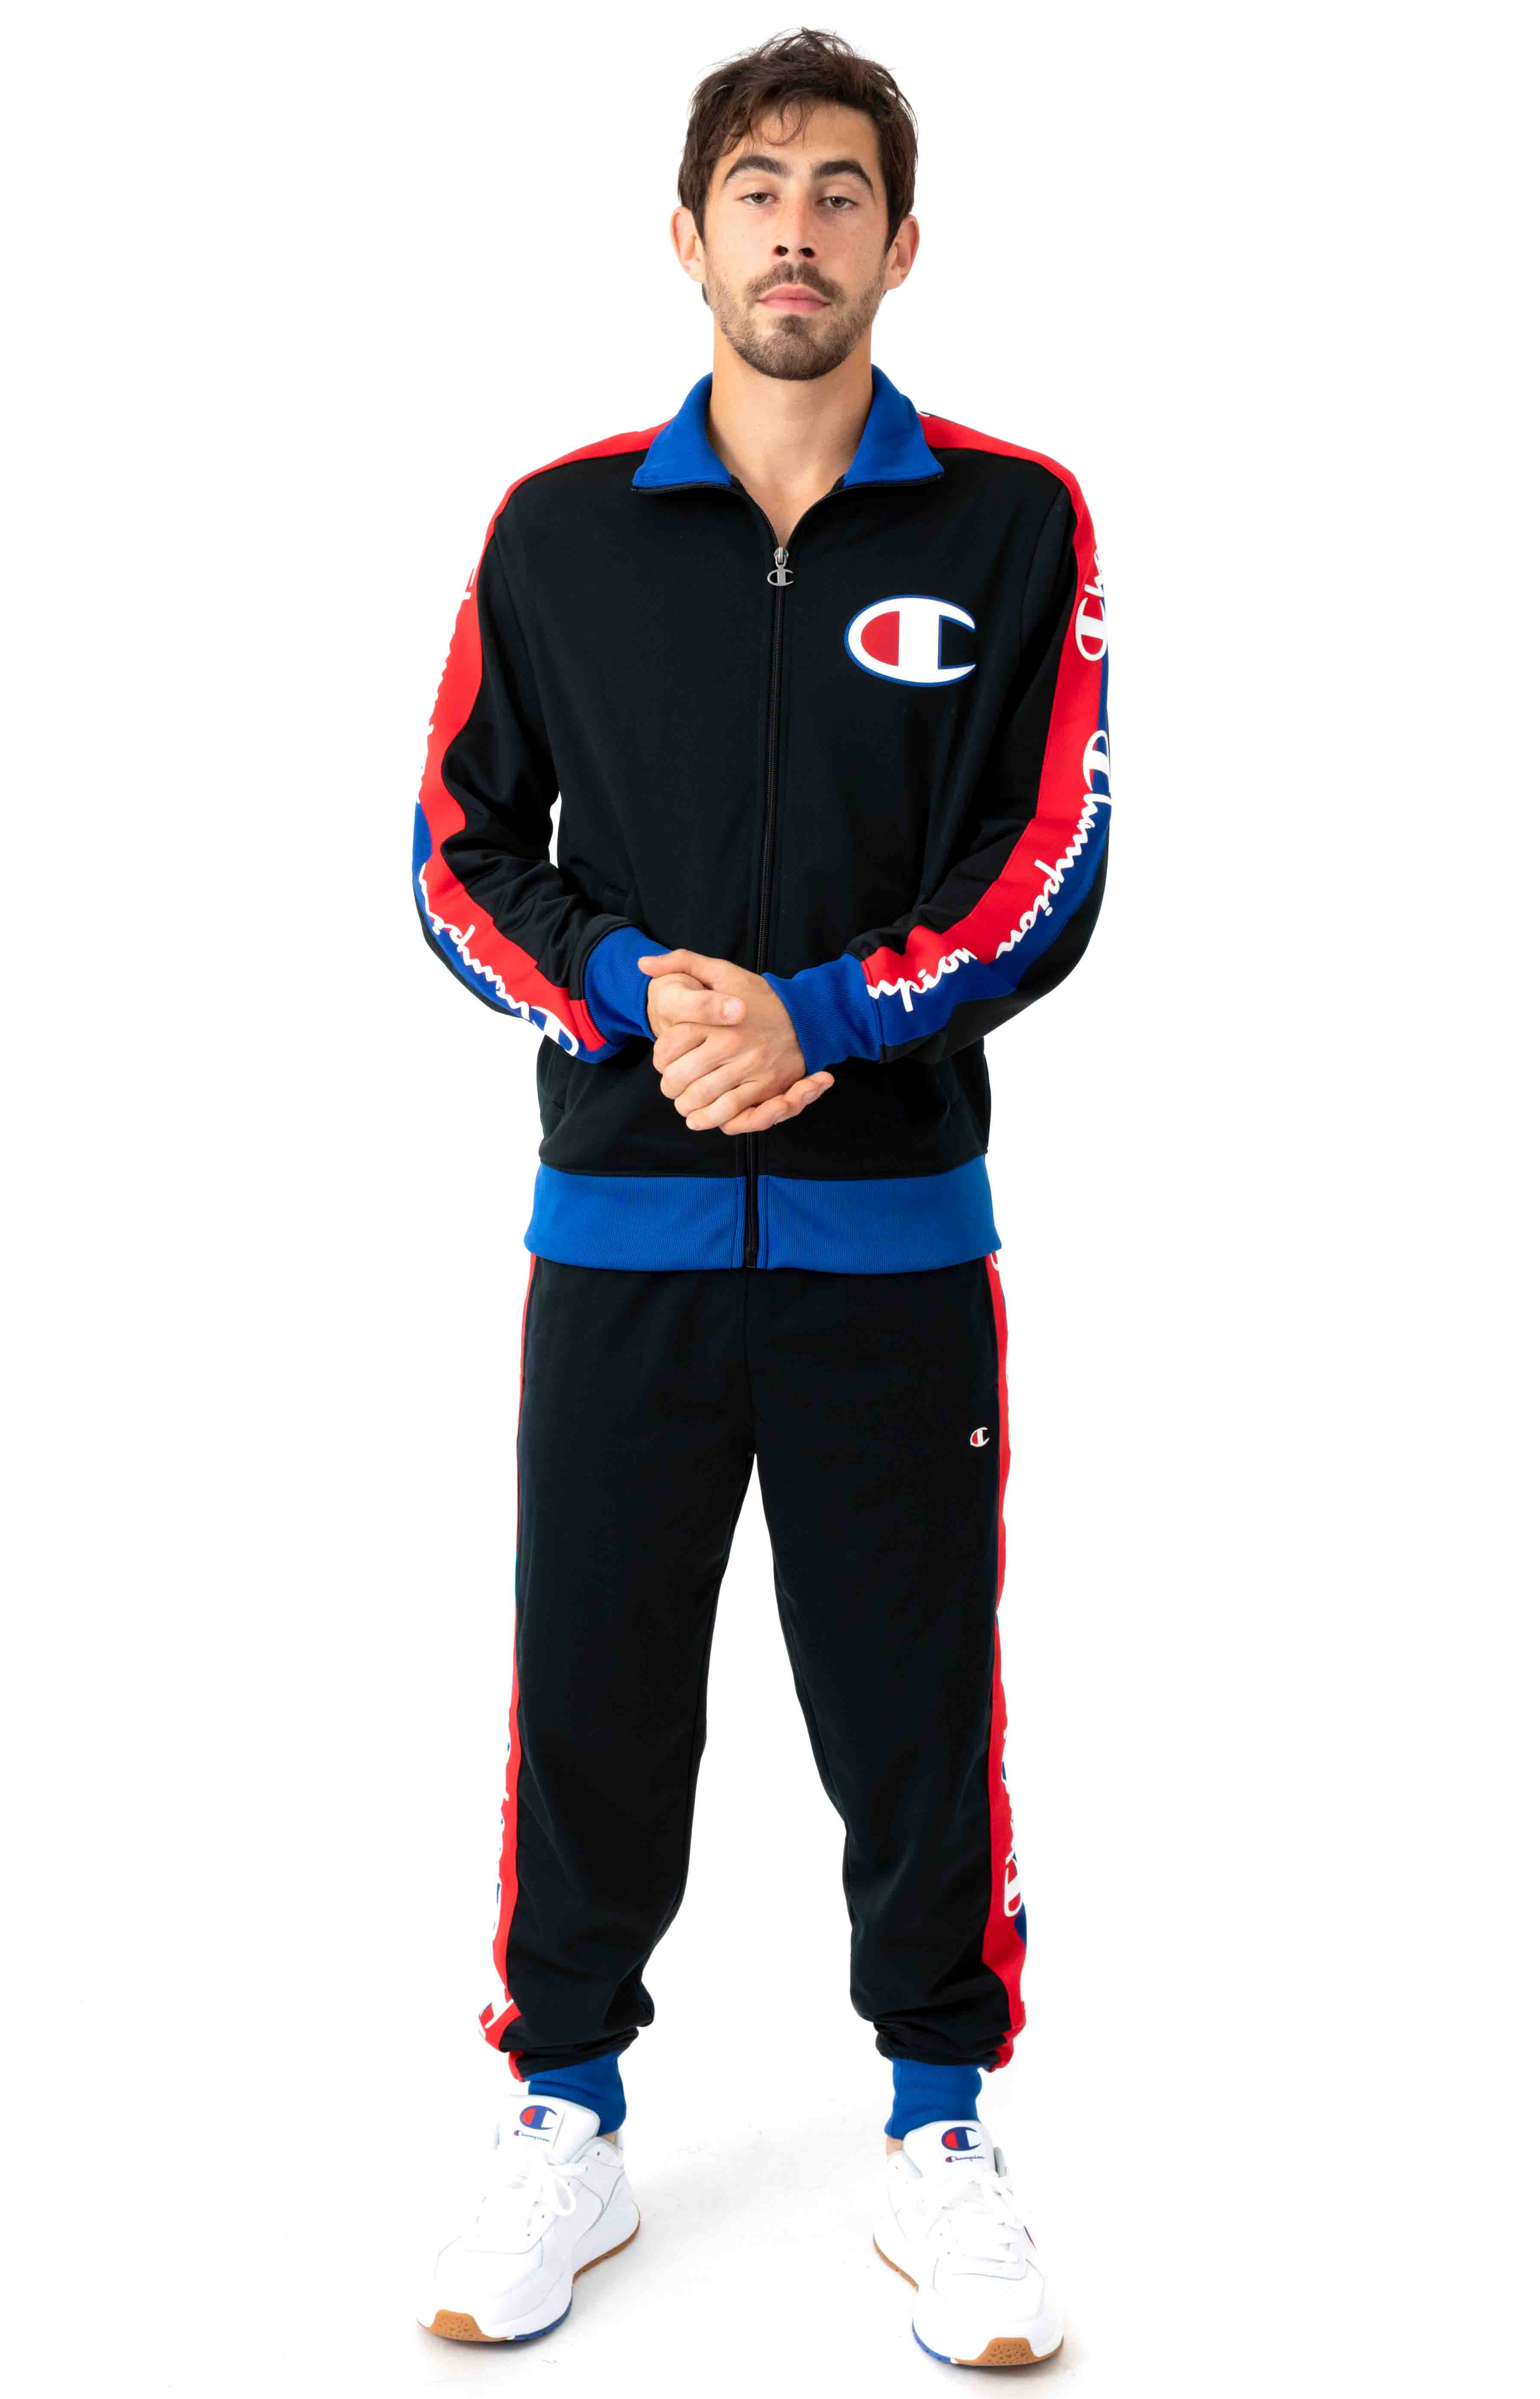 Tricot Track Pant w/ Champion Taping - Black/Surf the Web 4